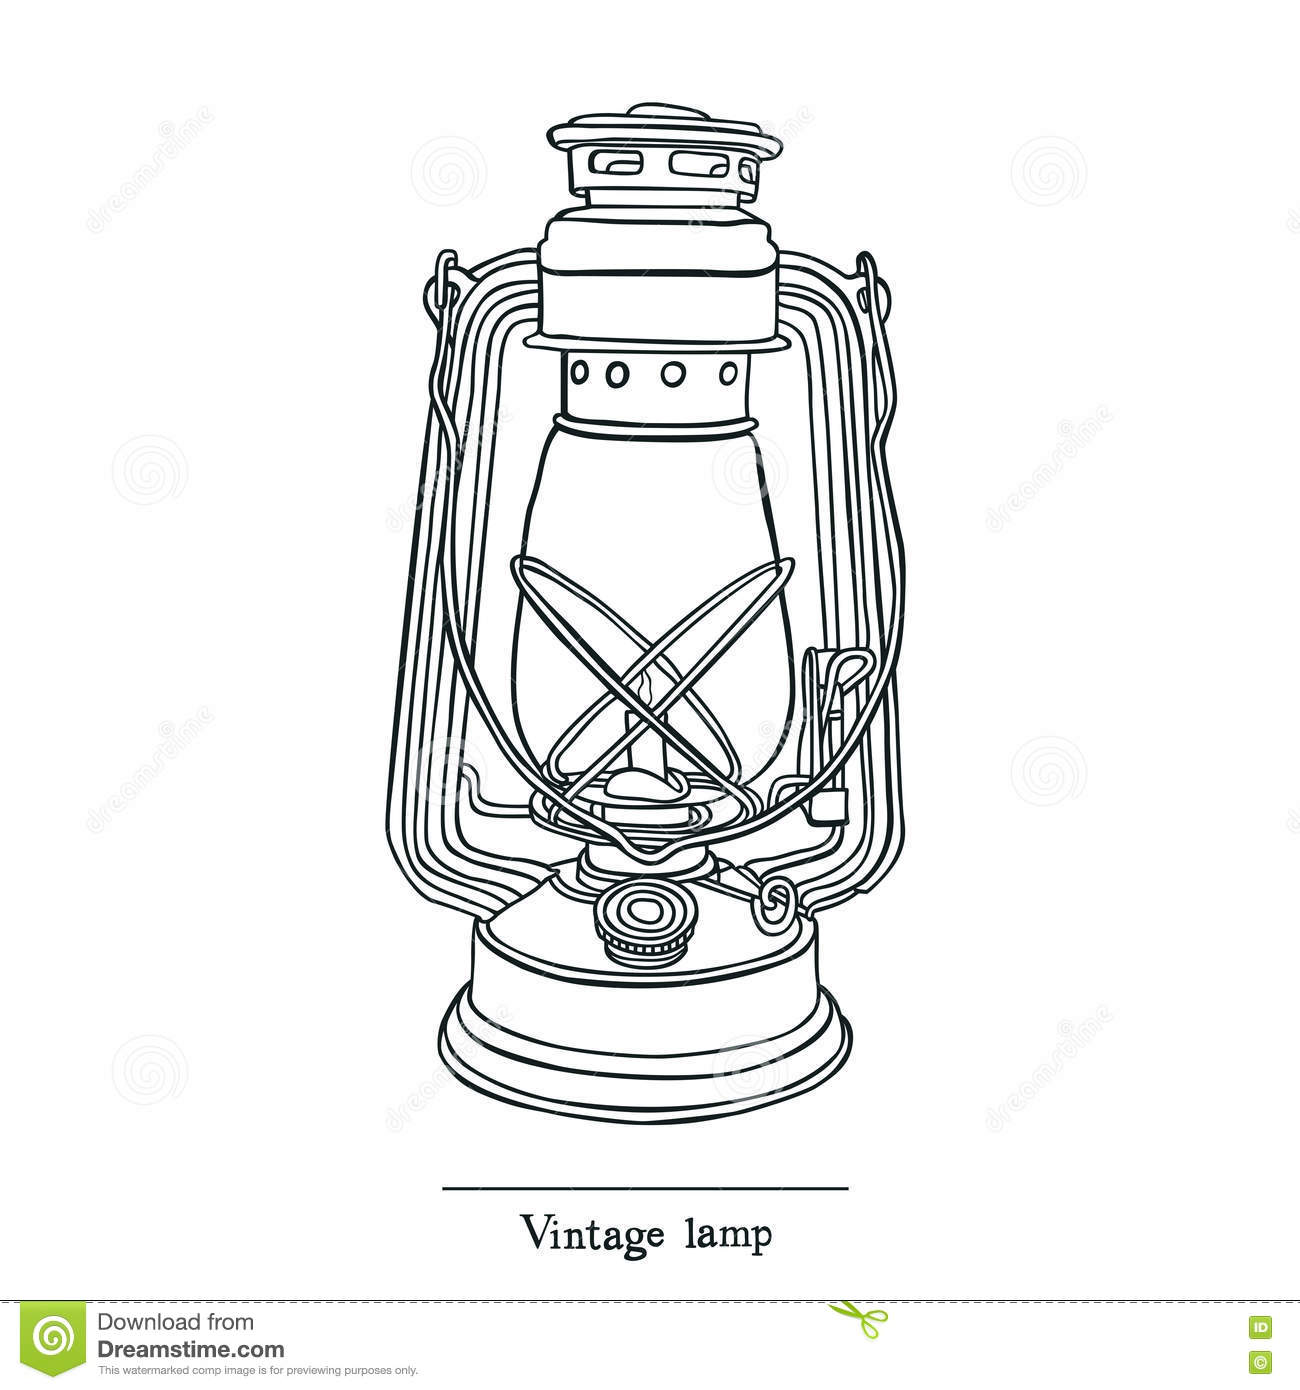 Vintage Candle Lamp Line Style Stock Vector - Illustration of ... for candle lamp drawing  51ane